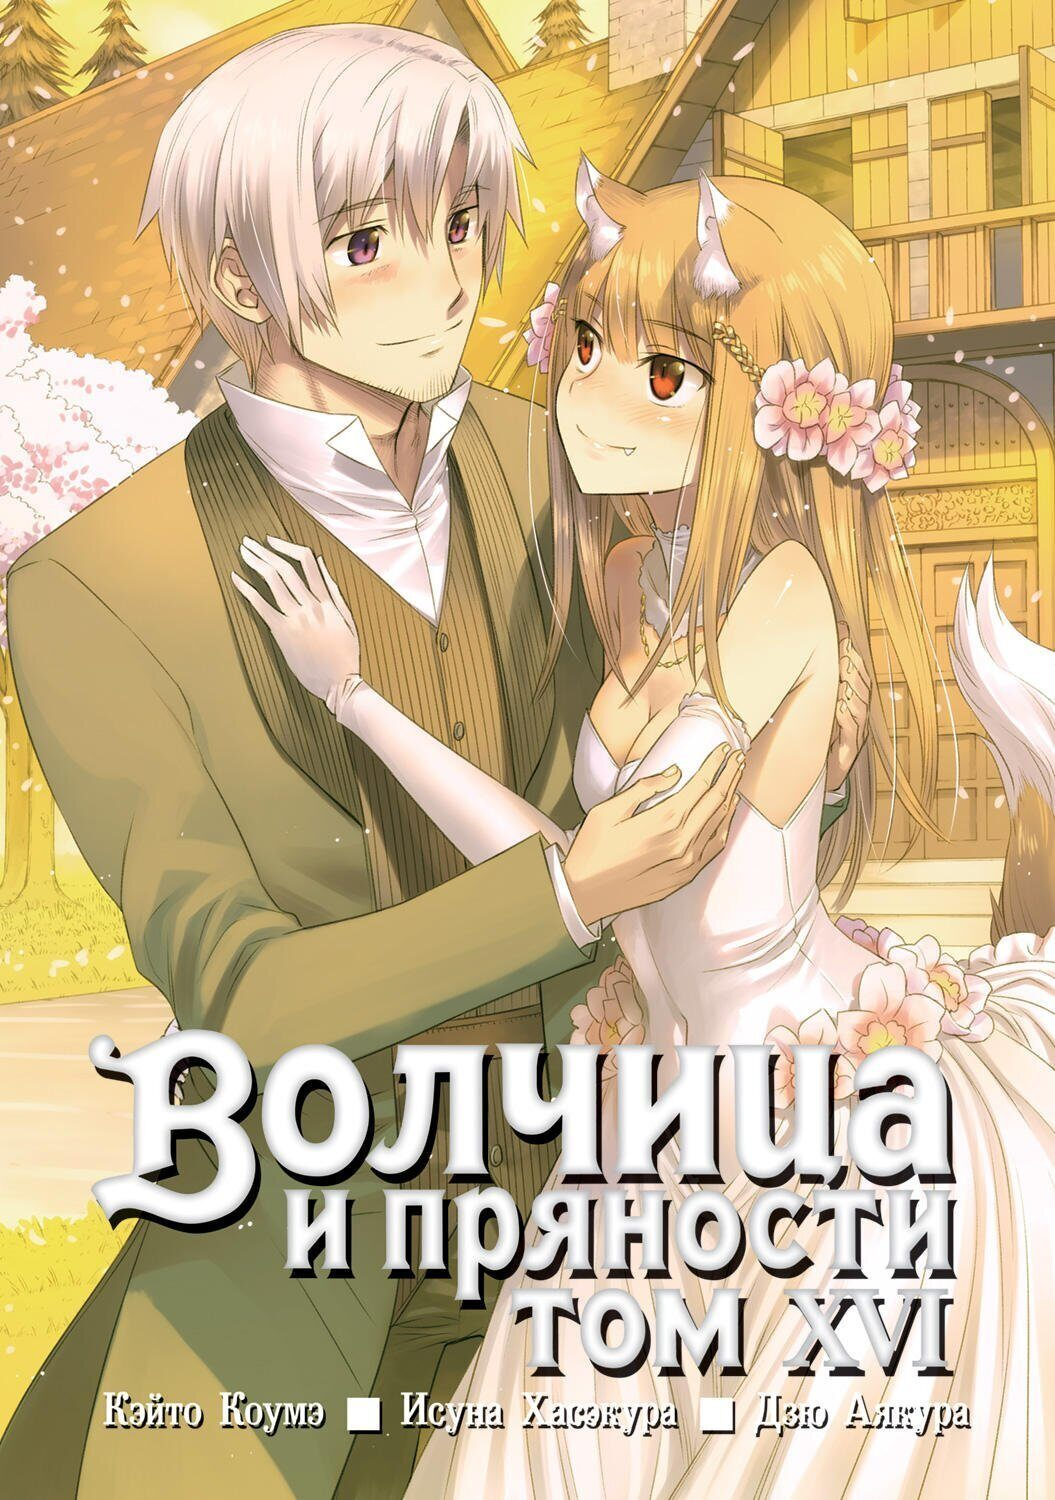 Манга Волчица и пряности 16 том 12+ / Spice and Wolf vol.16 12+